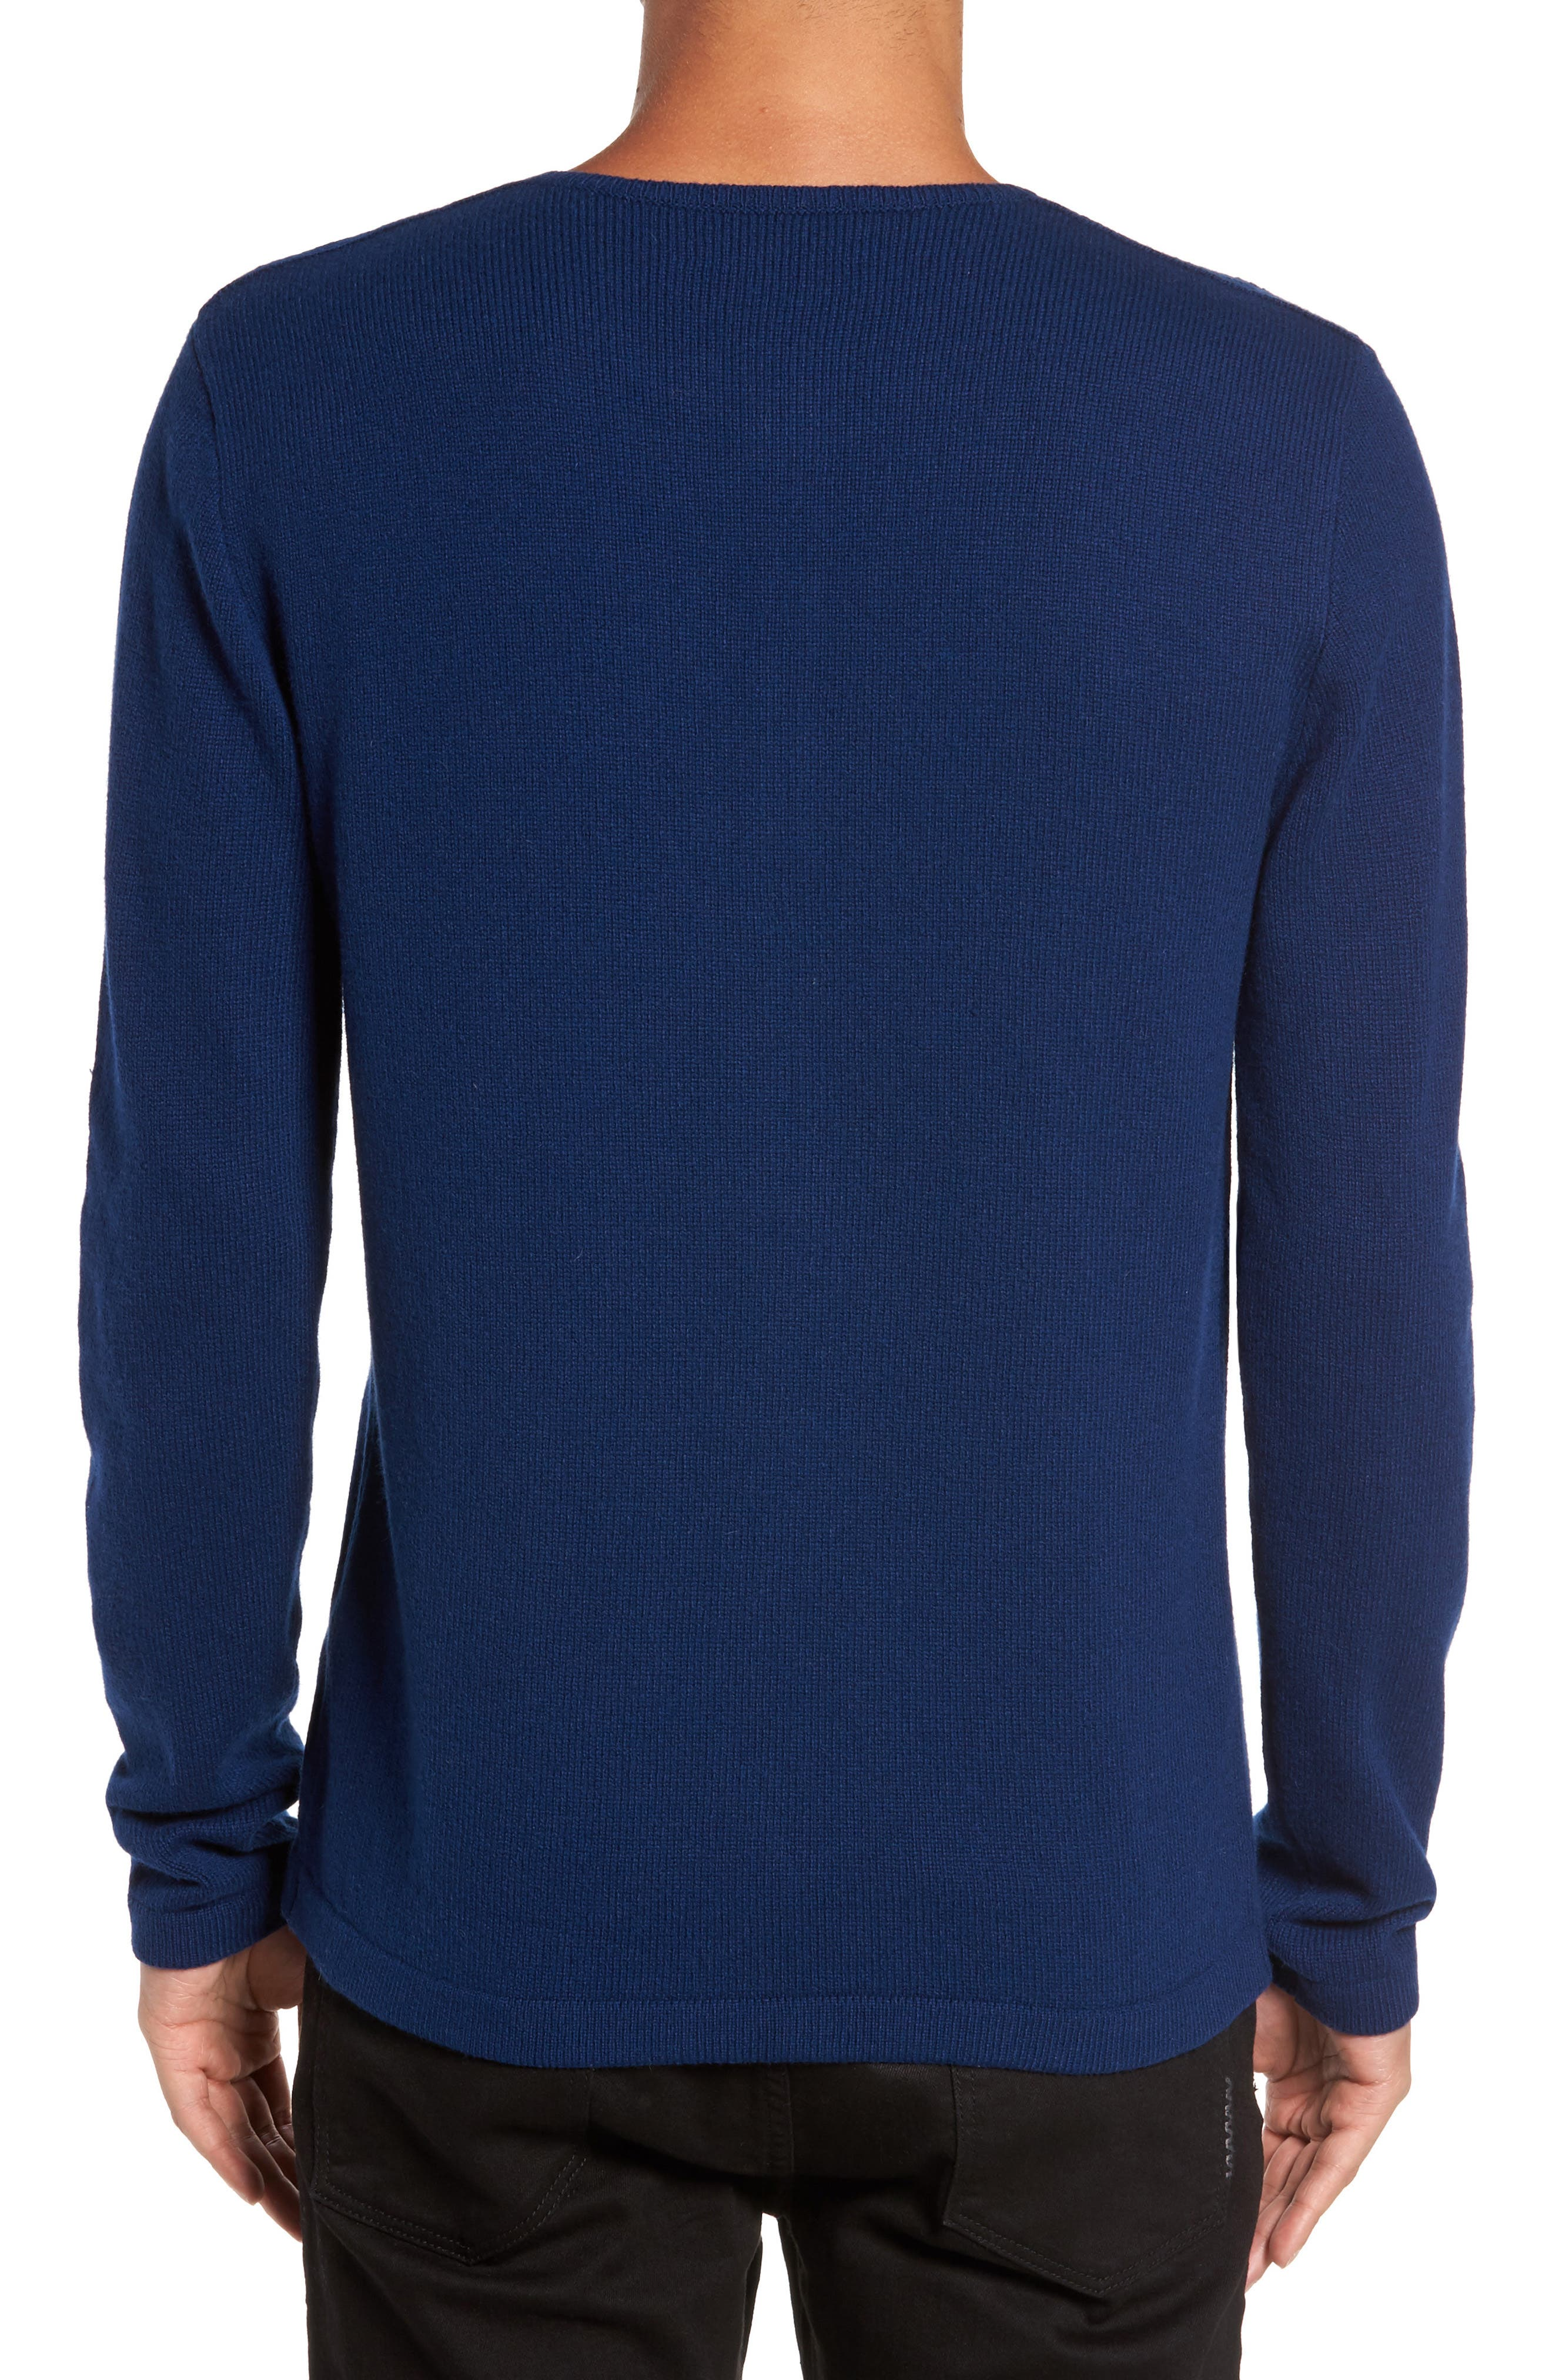 Henley Sweater,                             Alternate thumbnail 4, color,